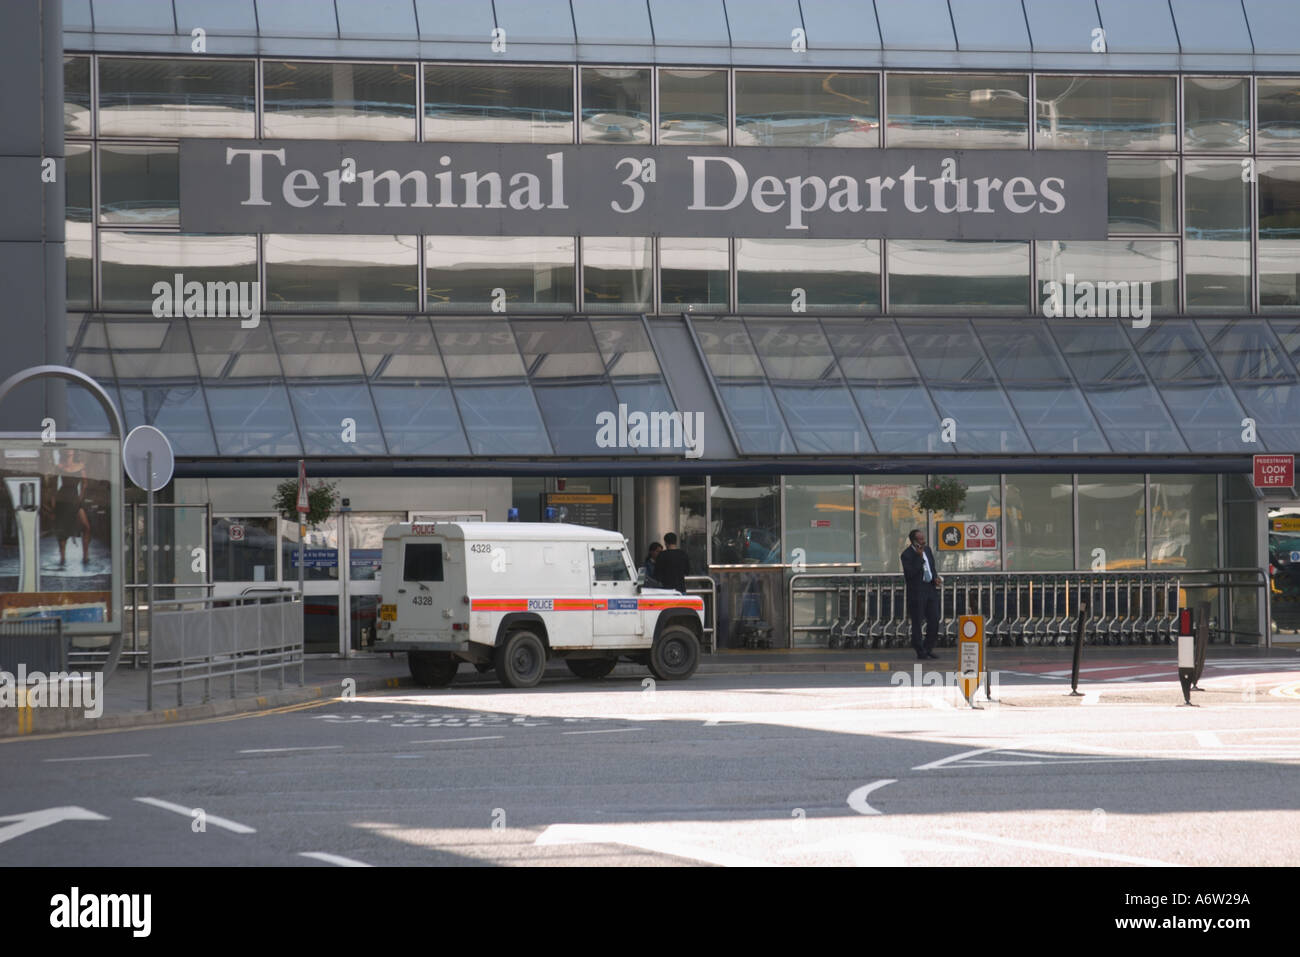 armoured police vehicle outside terminal 3 departures at